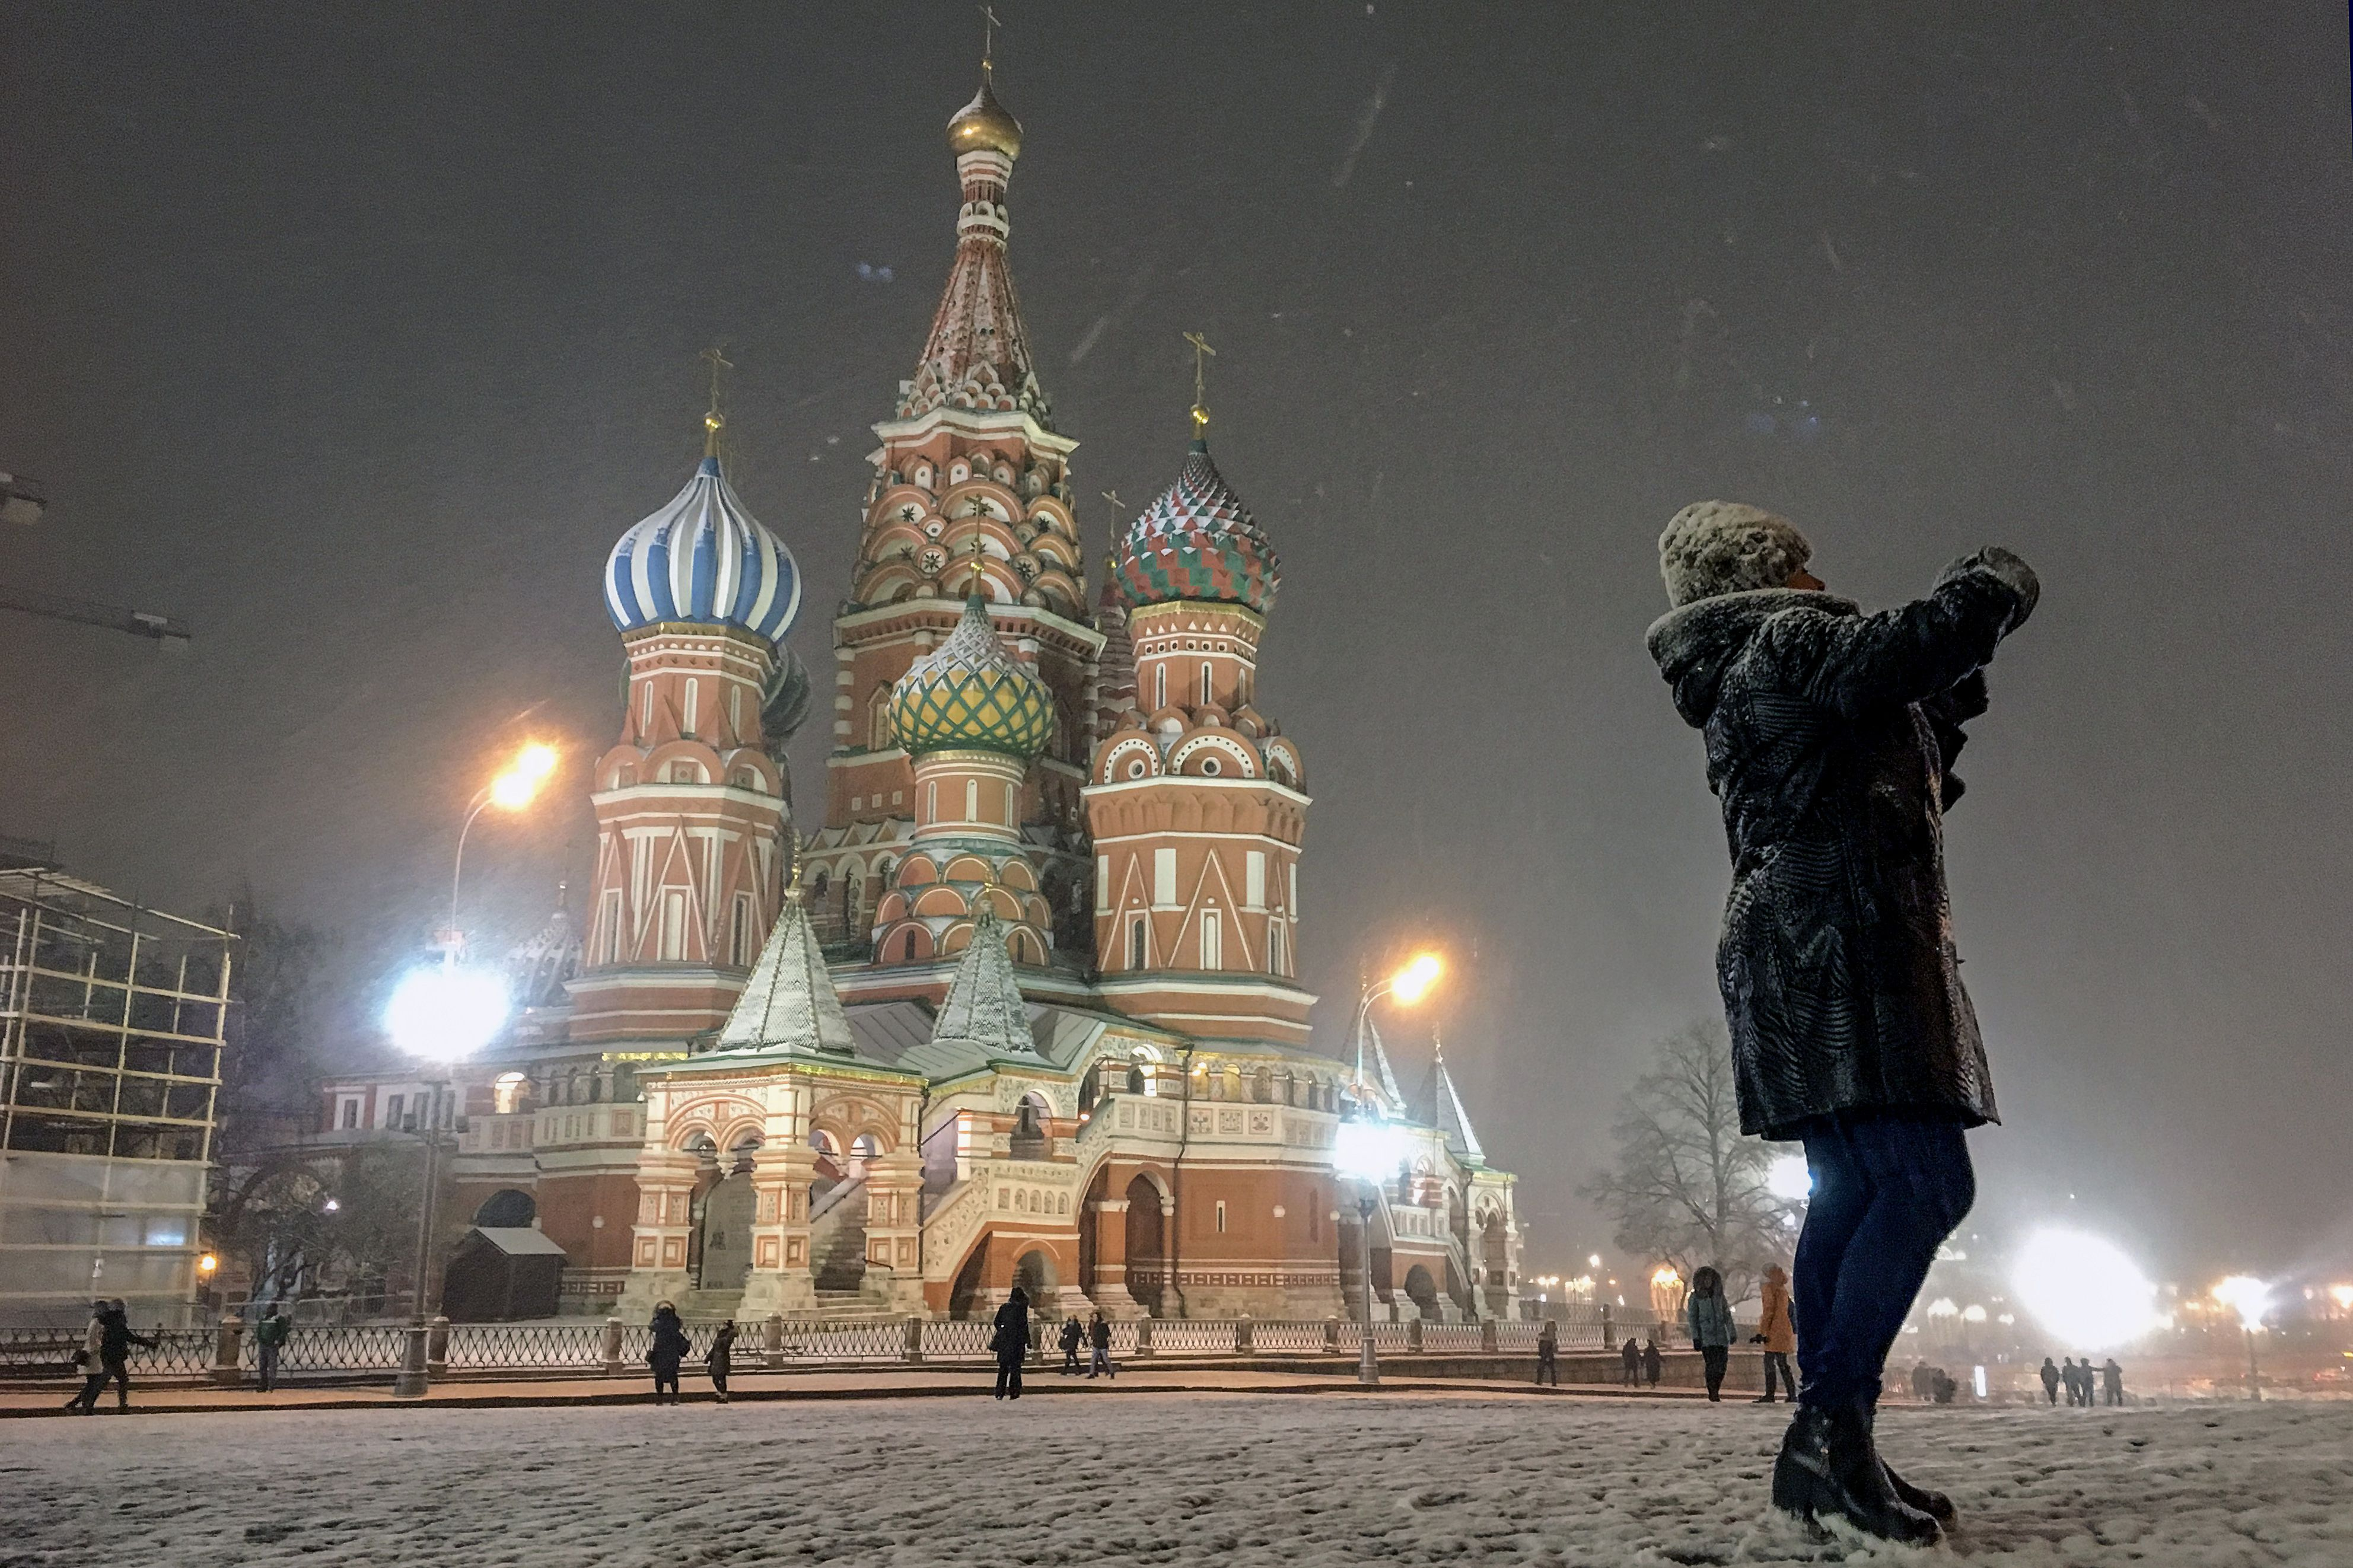 TOPSHOT-RUSSIA-TOURISM-WEATHER